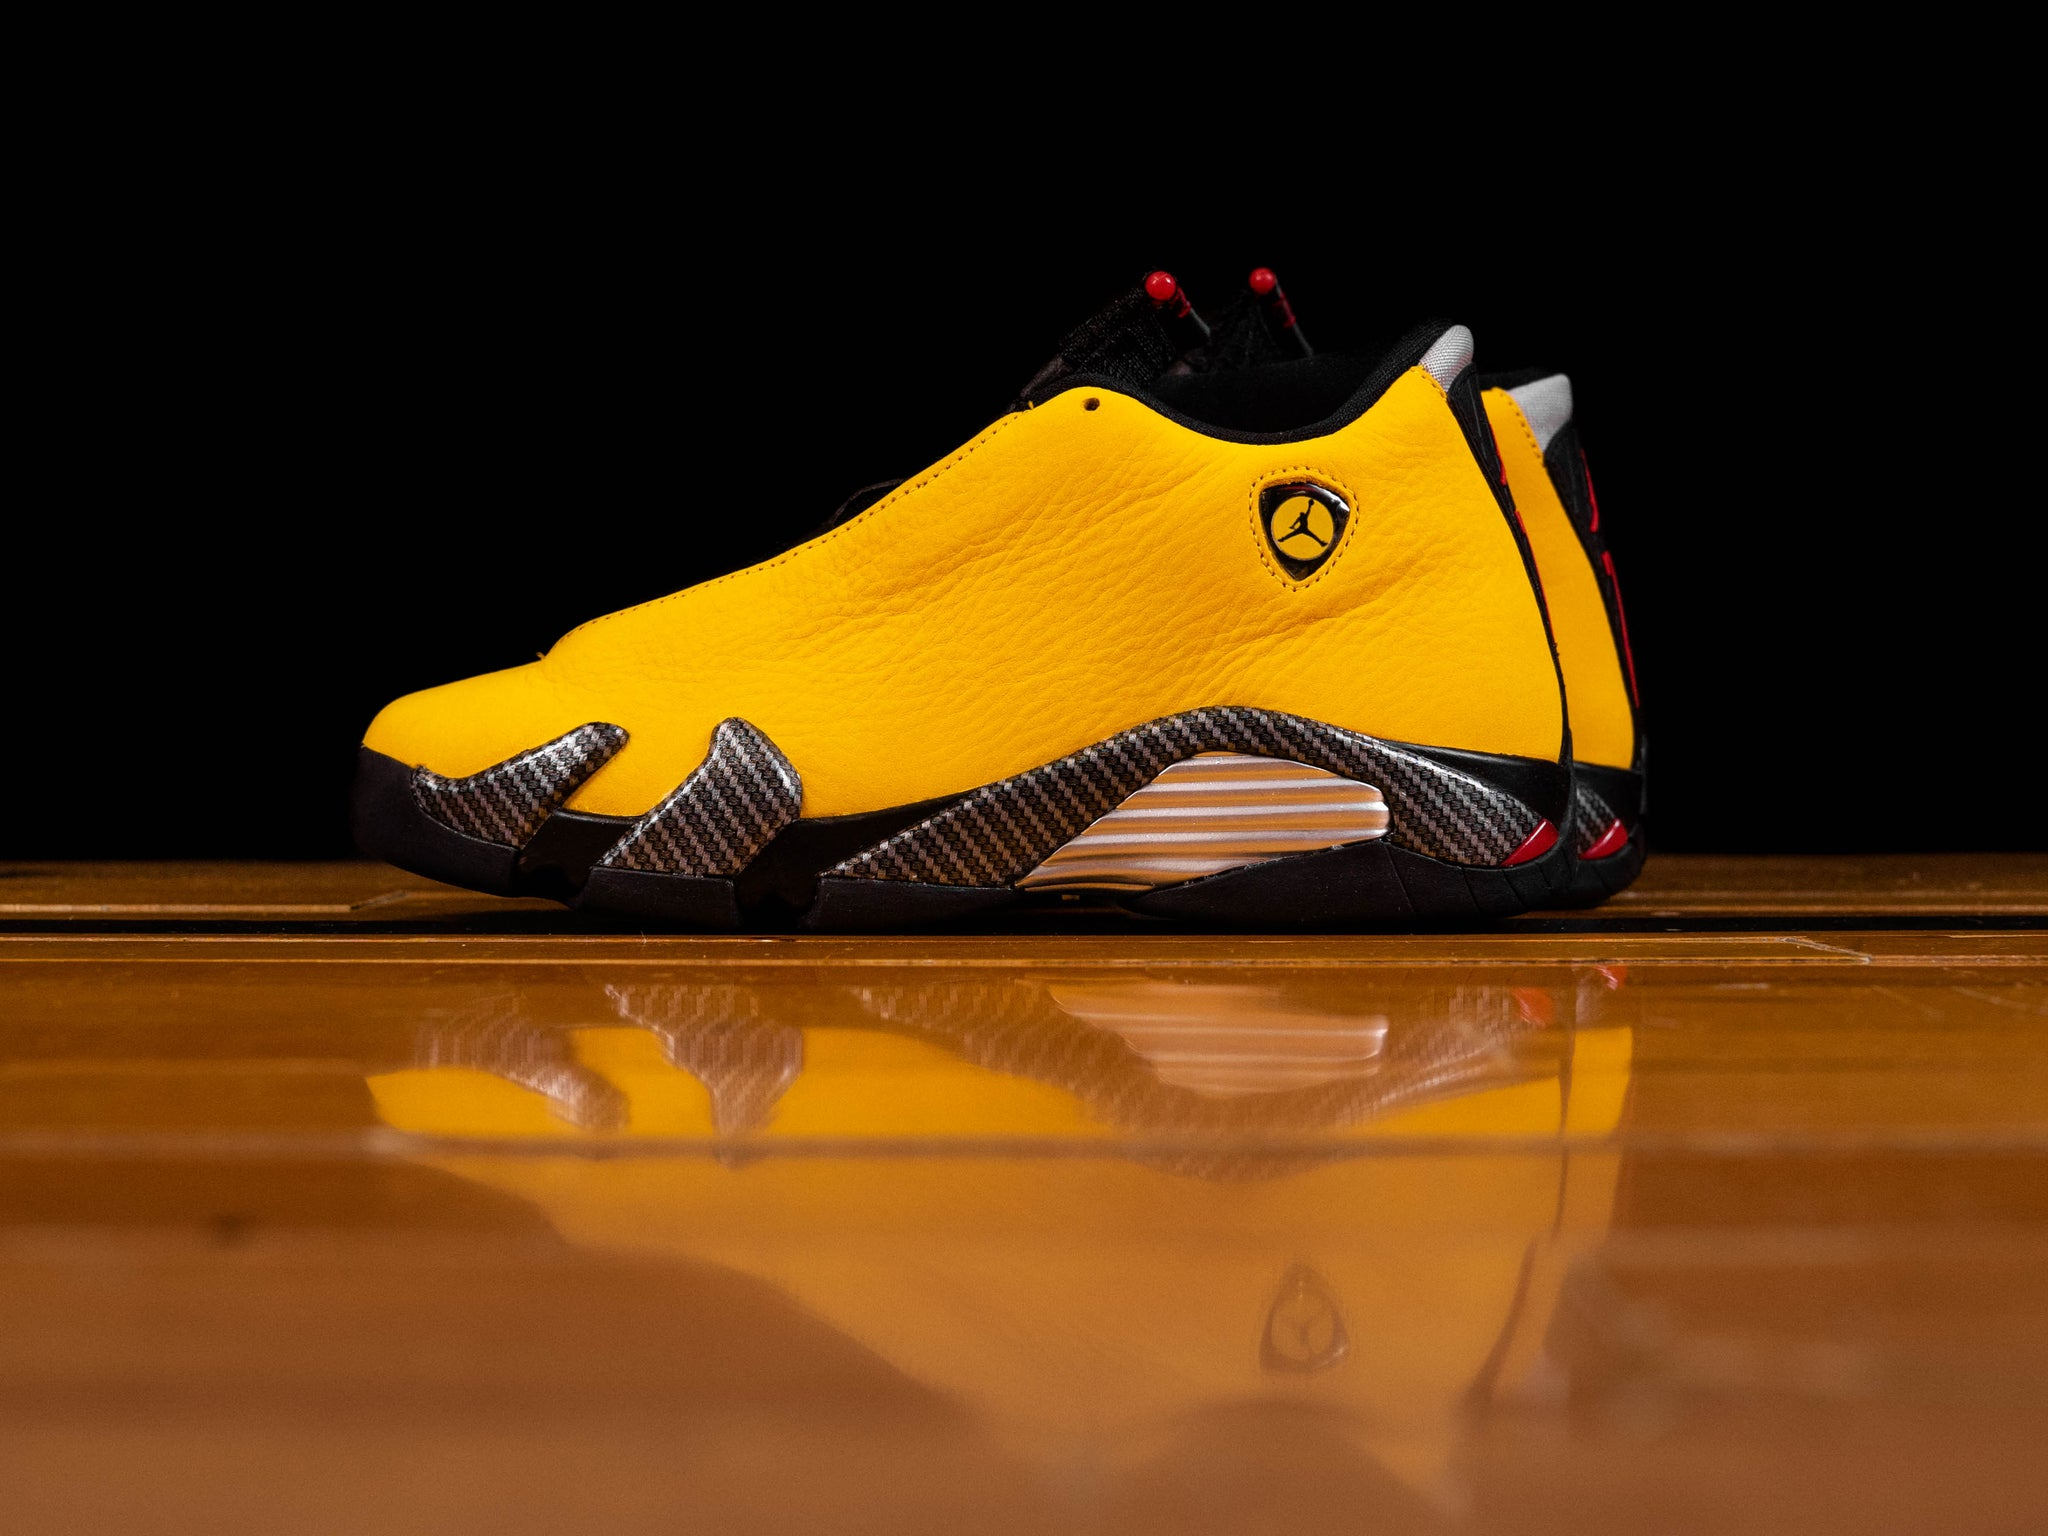 new product 3dd69 6786e Kid's Air Jordan 14 Retro 'Reverse Ferrari' [BV1218-706]